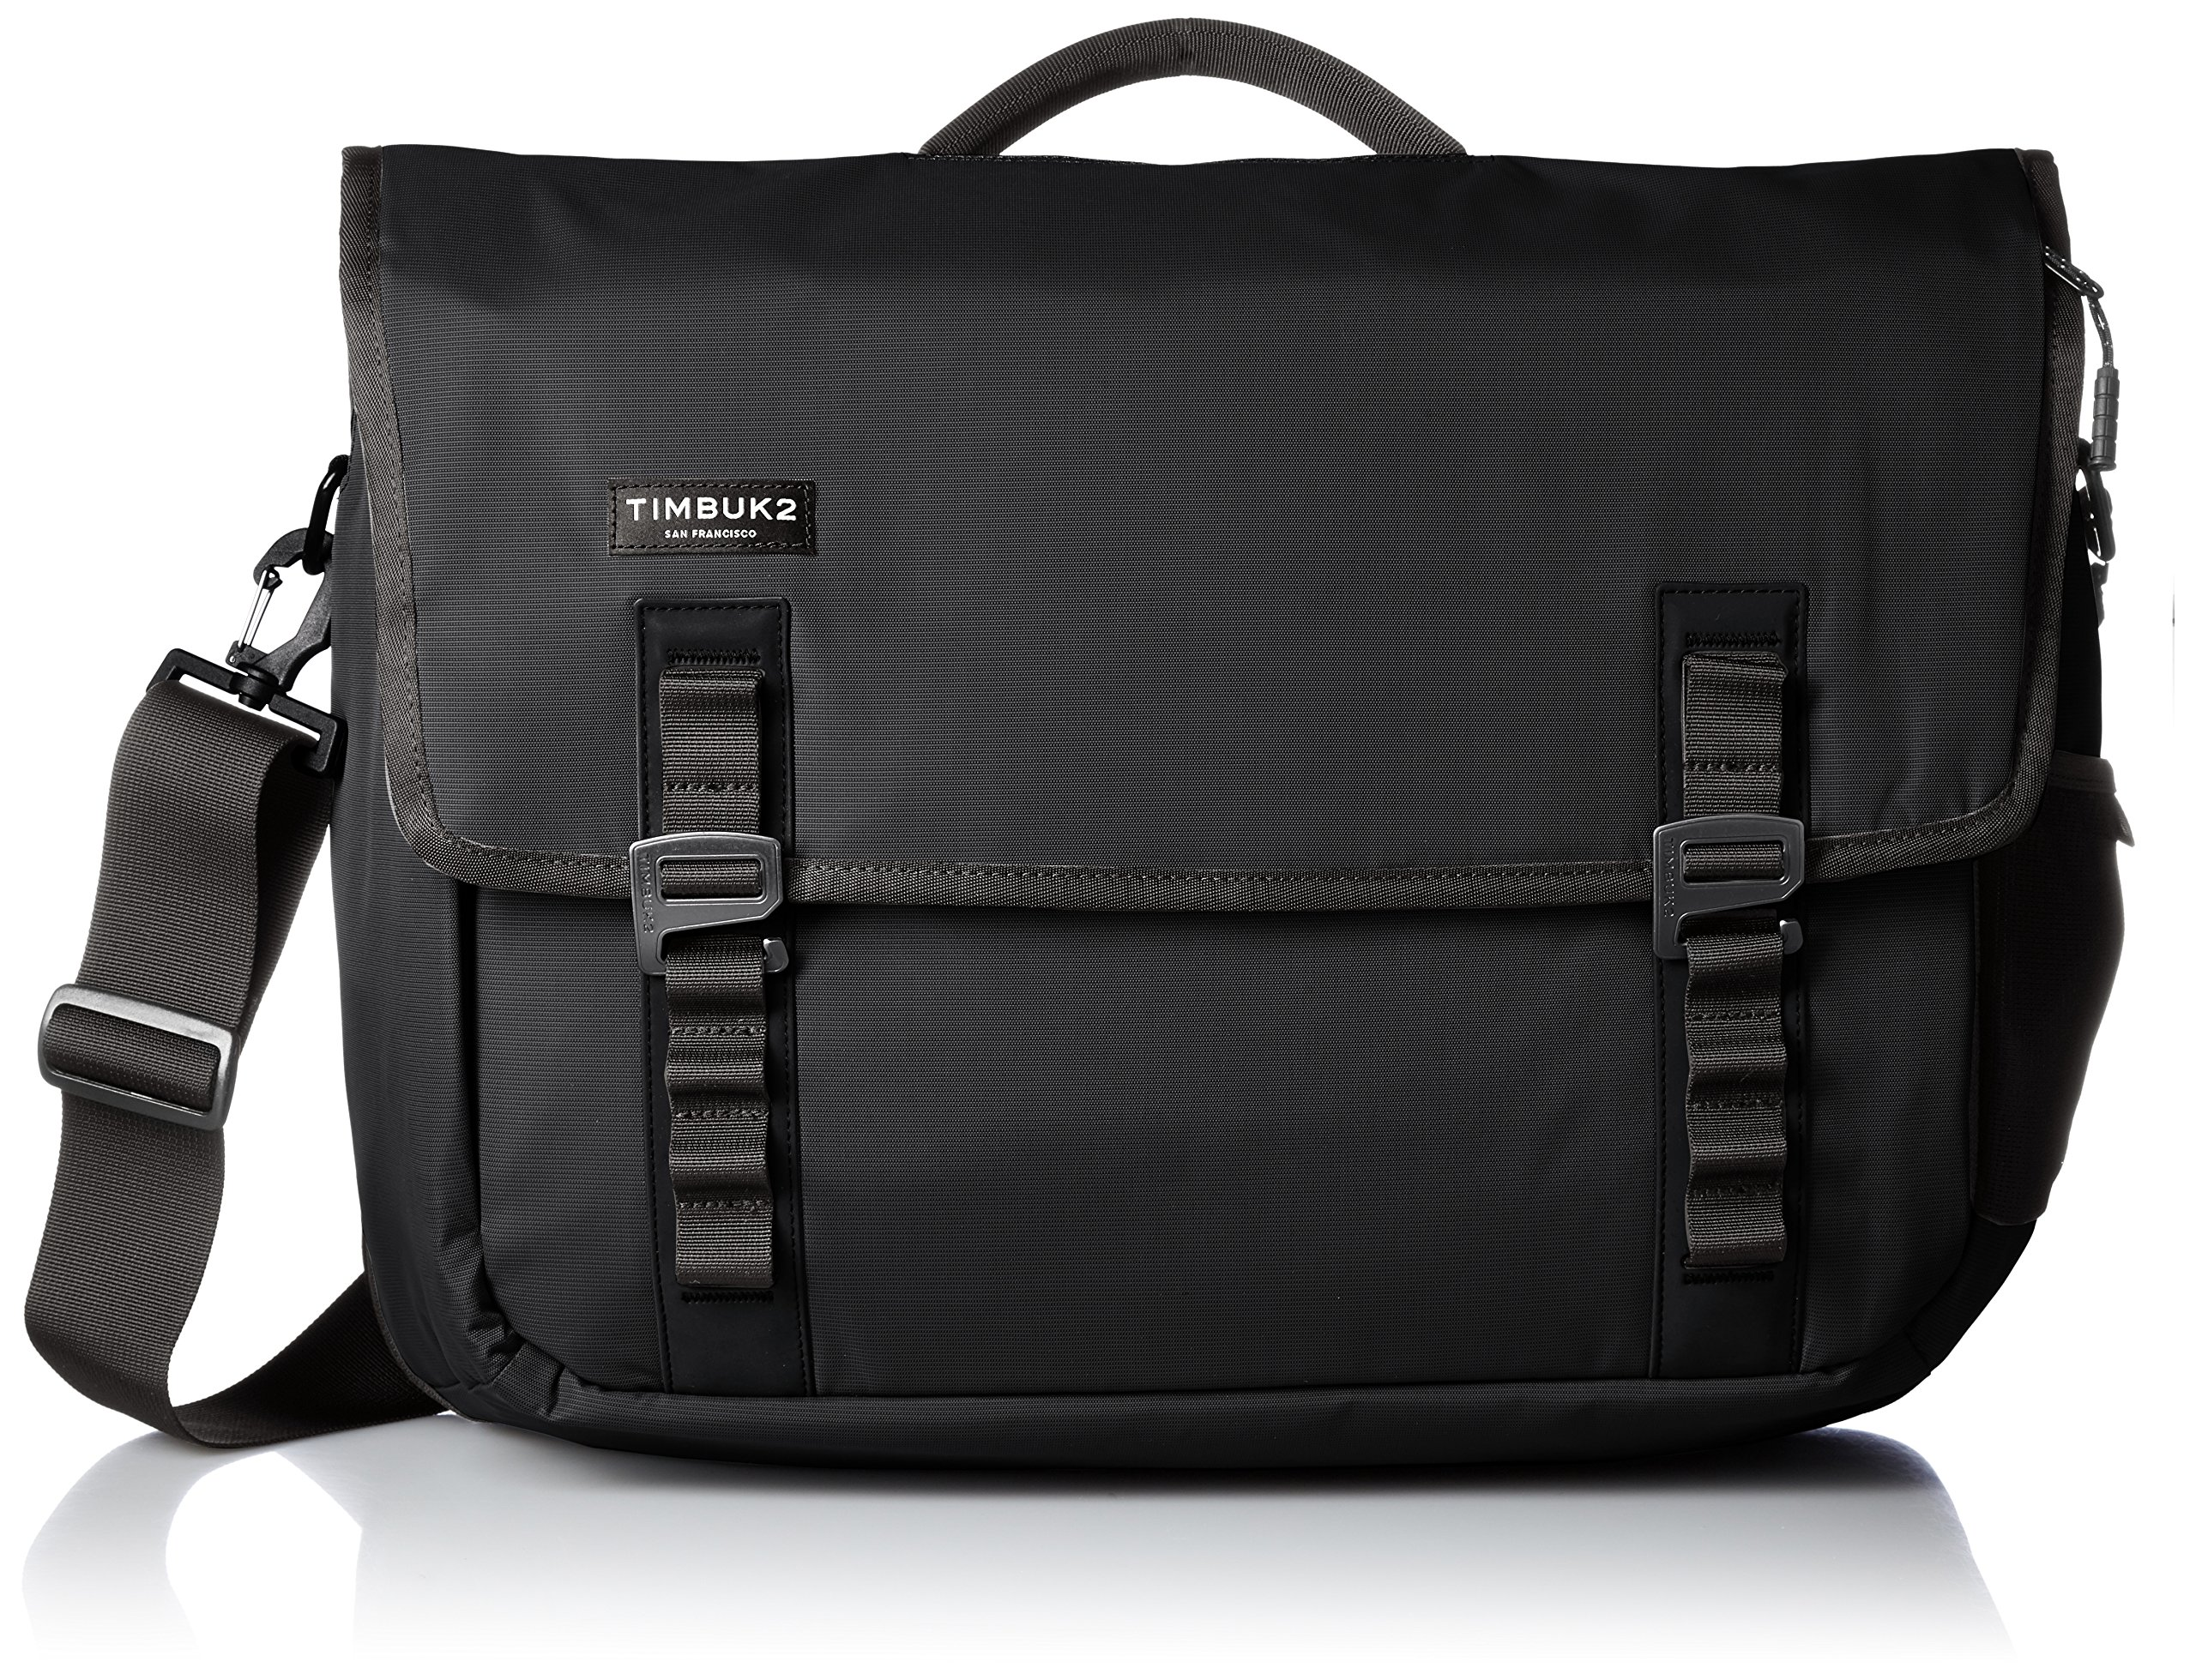 Timbuk2 Command Travel-Friendly Messenger Bag 2015, Jet Black, l, Large by Timbuk2